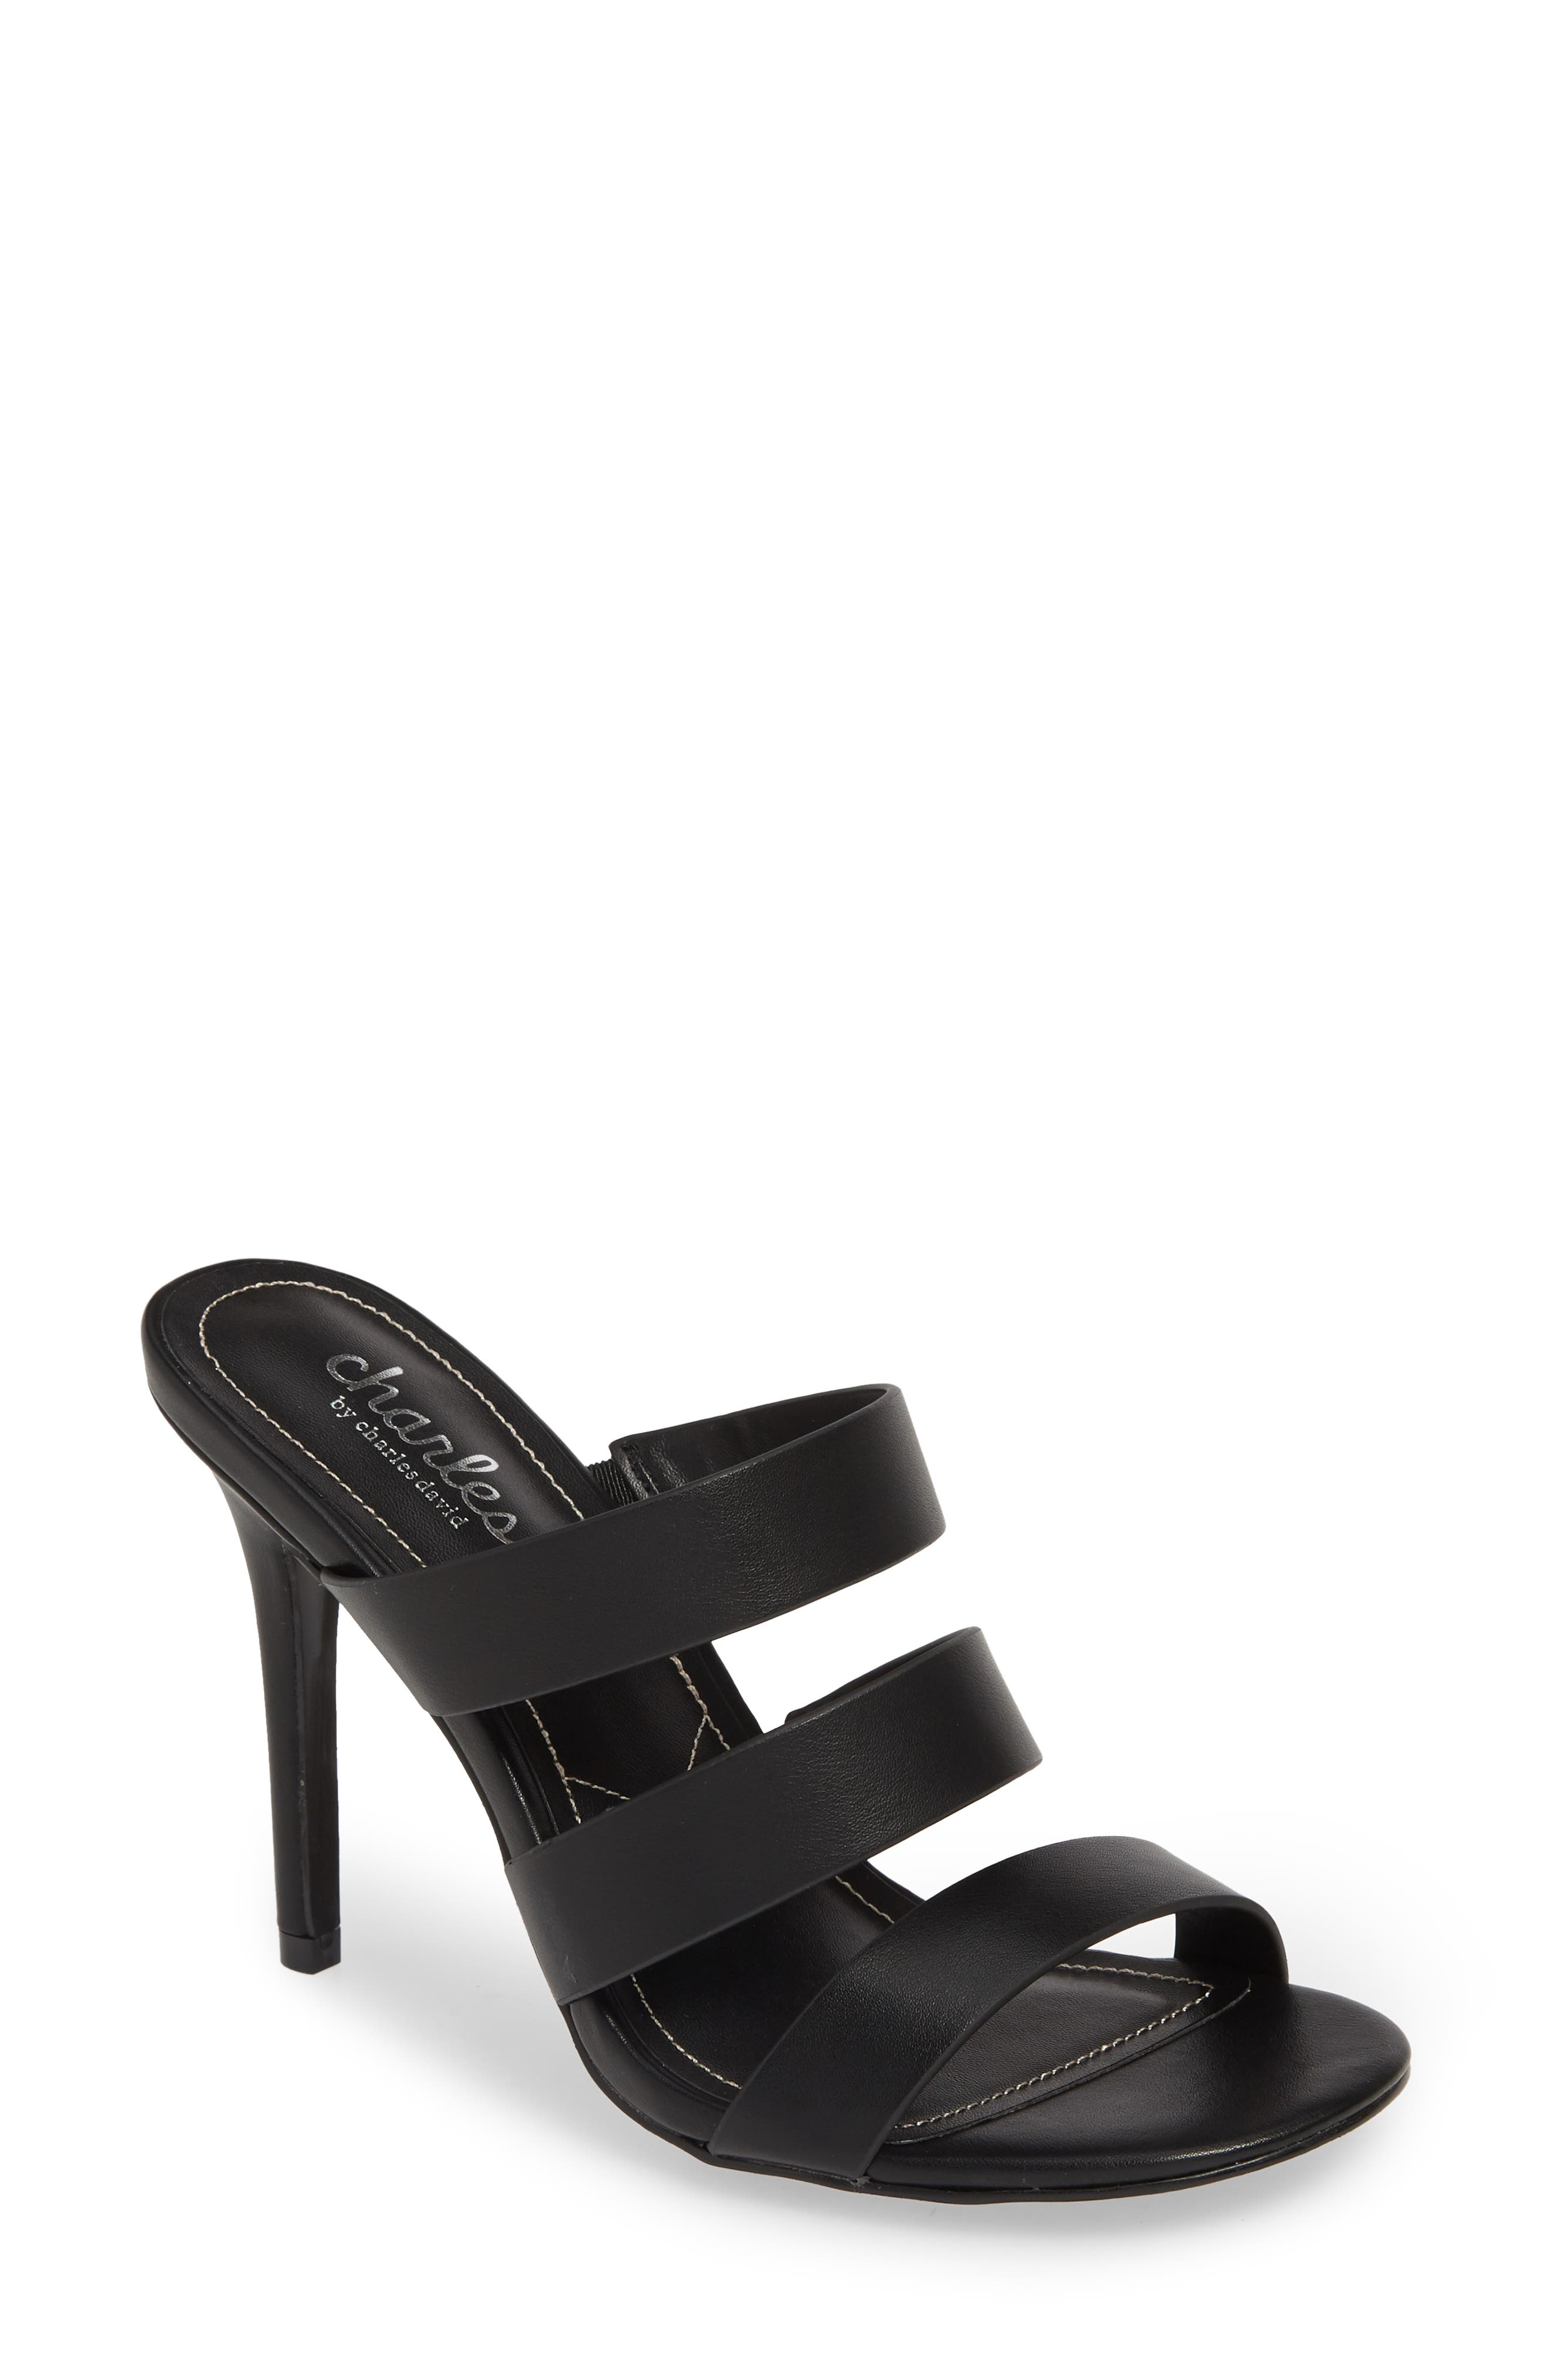 CHARLES BY CHARLES DAVID Rivalary Slide Sandal, Main, color, BLACK FAUX LEATHER